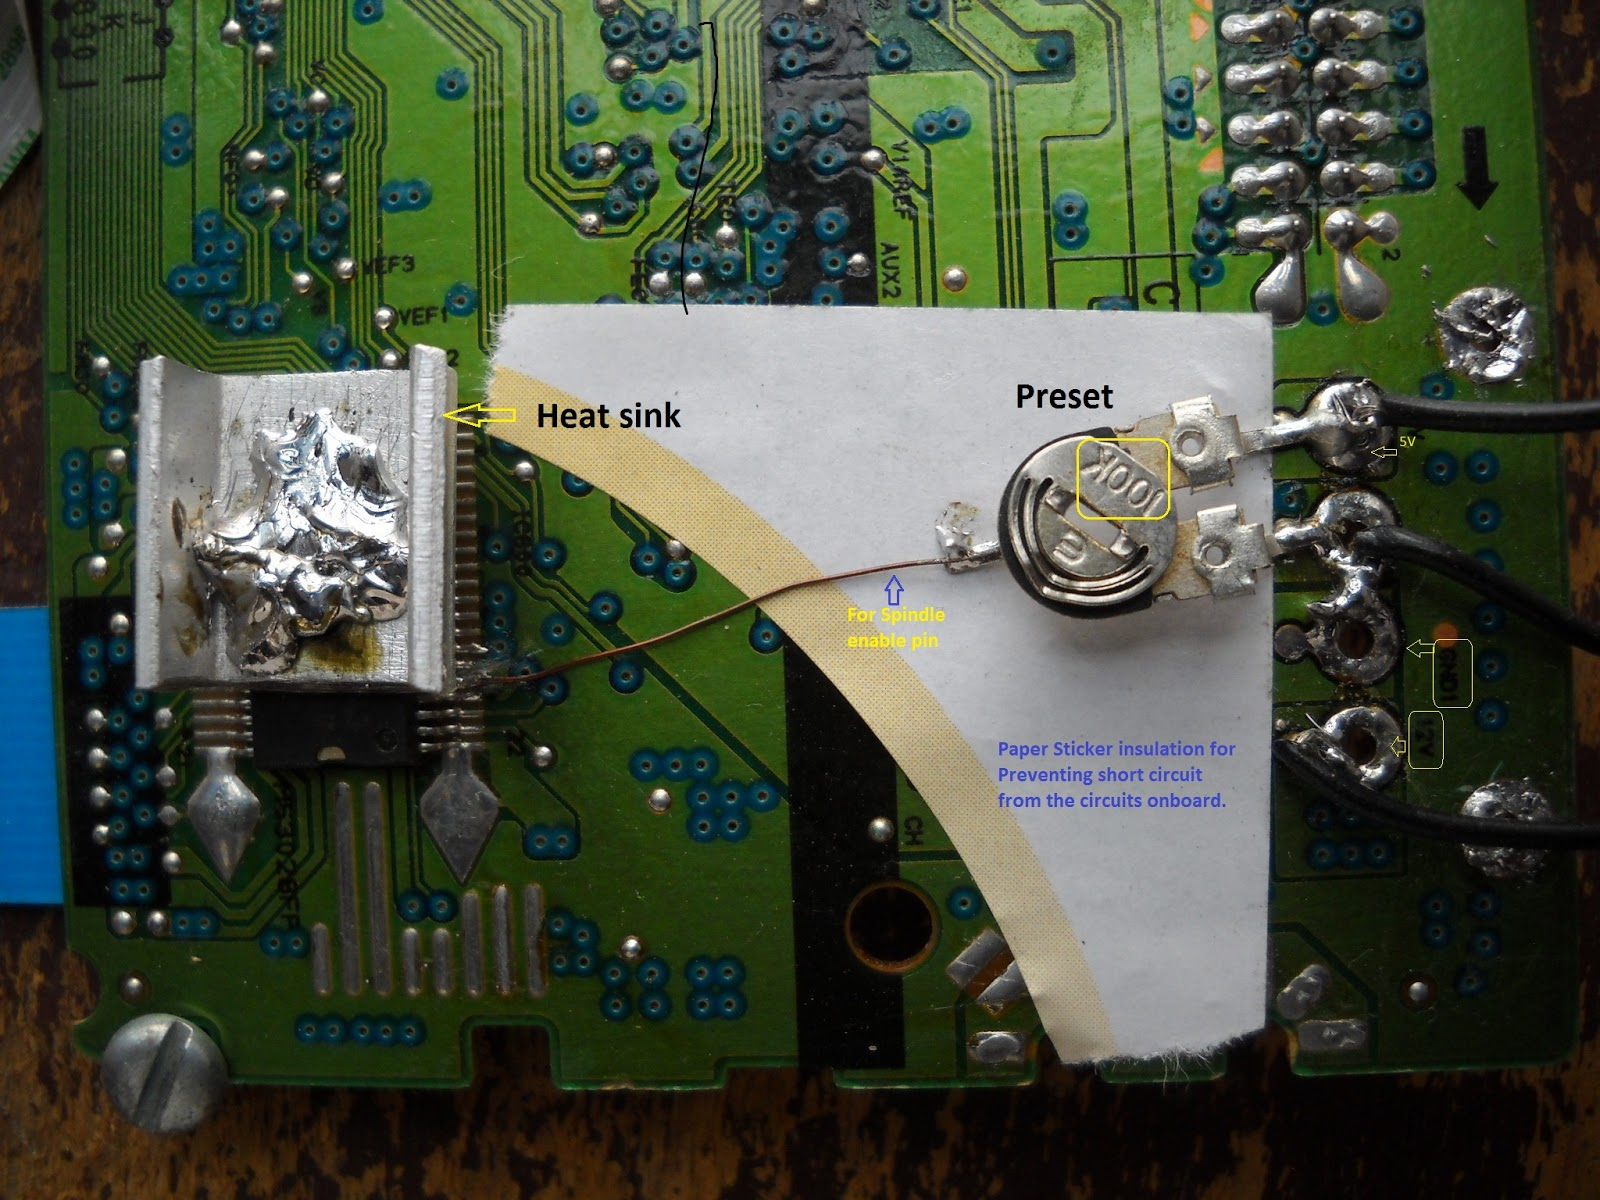 Diy Electronics Cd Dvd Drive Motor Driver Hack To Run Its Own 3 Brushless Controller Circuit Actually I Overrided The P Coming From Other Control Ic Of Board By Simply Sodering O Preset That Pin